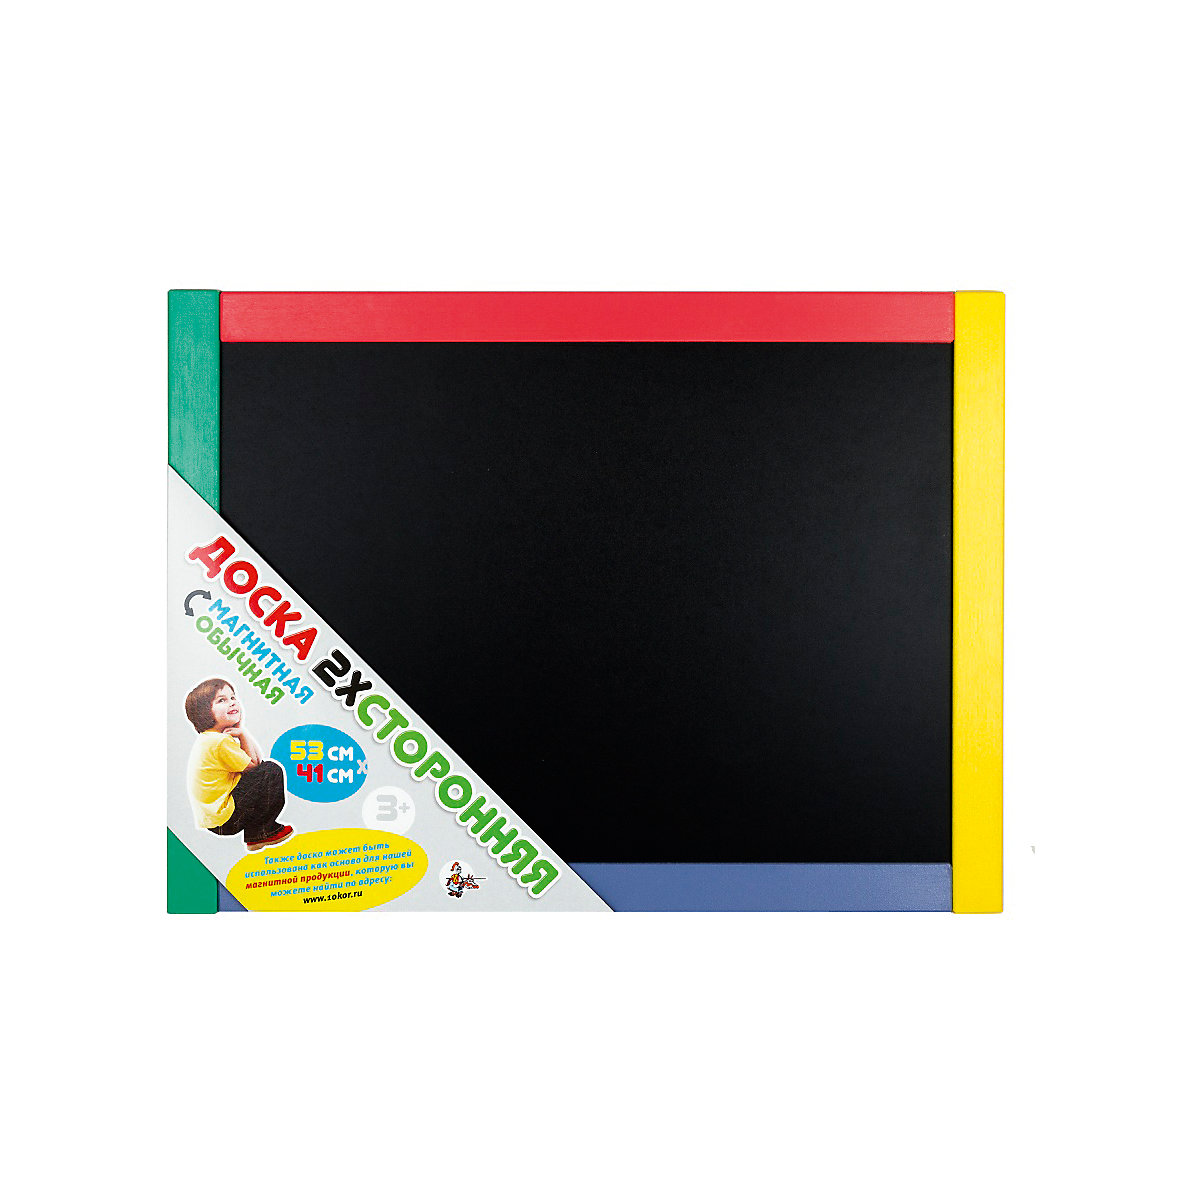 Blackboard Desyatoe Korolevstvo 5471709 Magnetic Marker Board  For Records Presentation Boards Drawing For Girls  Boys MTpromo